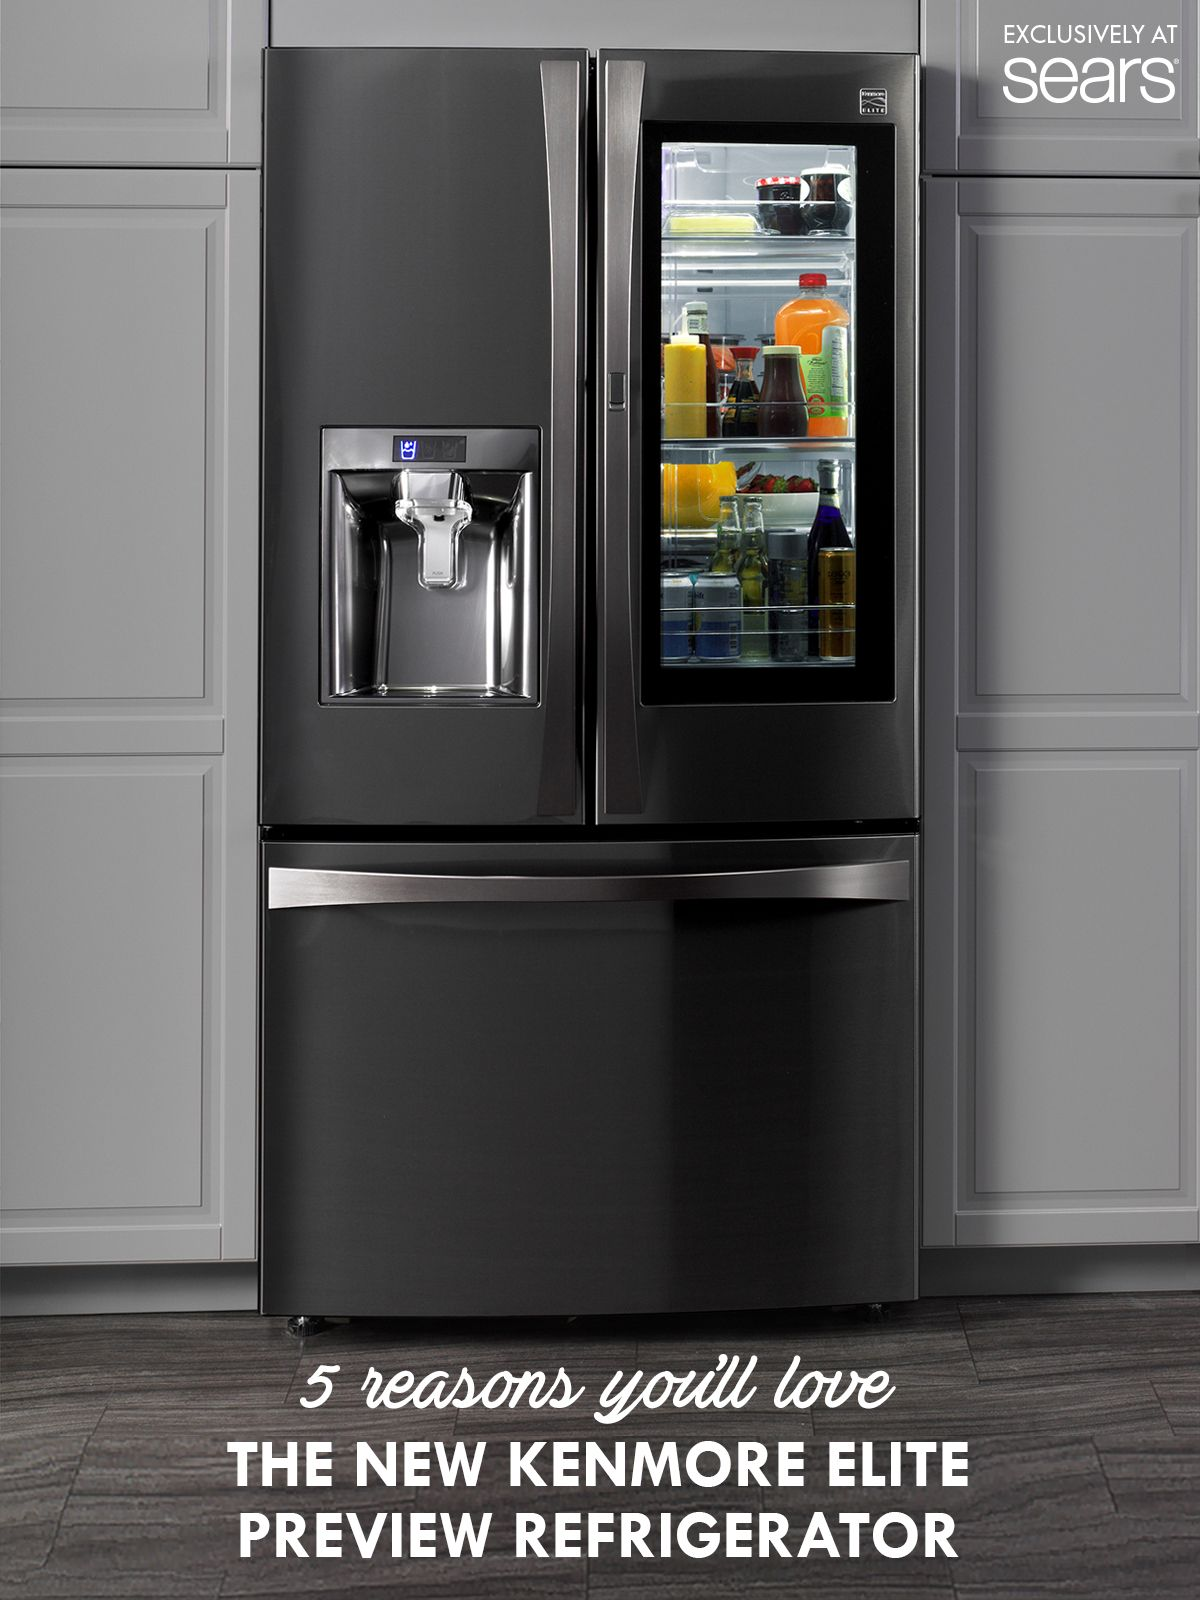 5 Reasons You Ll Love The New Kenmore Elite Preview Refrigerator Kenmore Elite Refrigerator Home Additions Outdoor Cooking Spaces